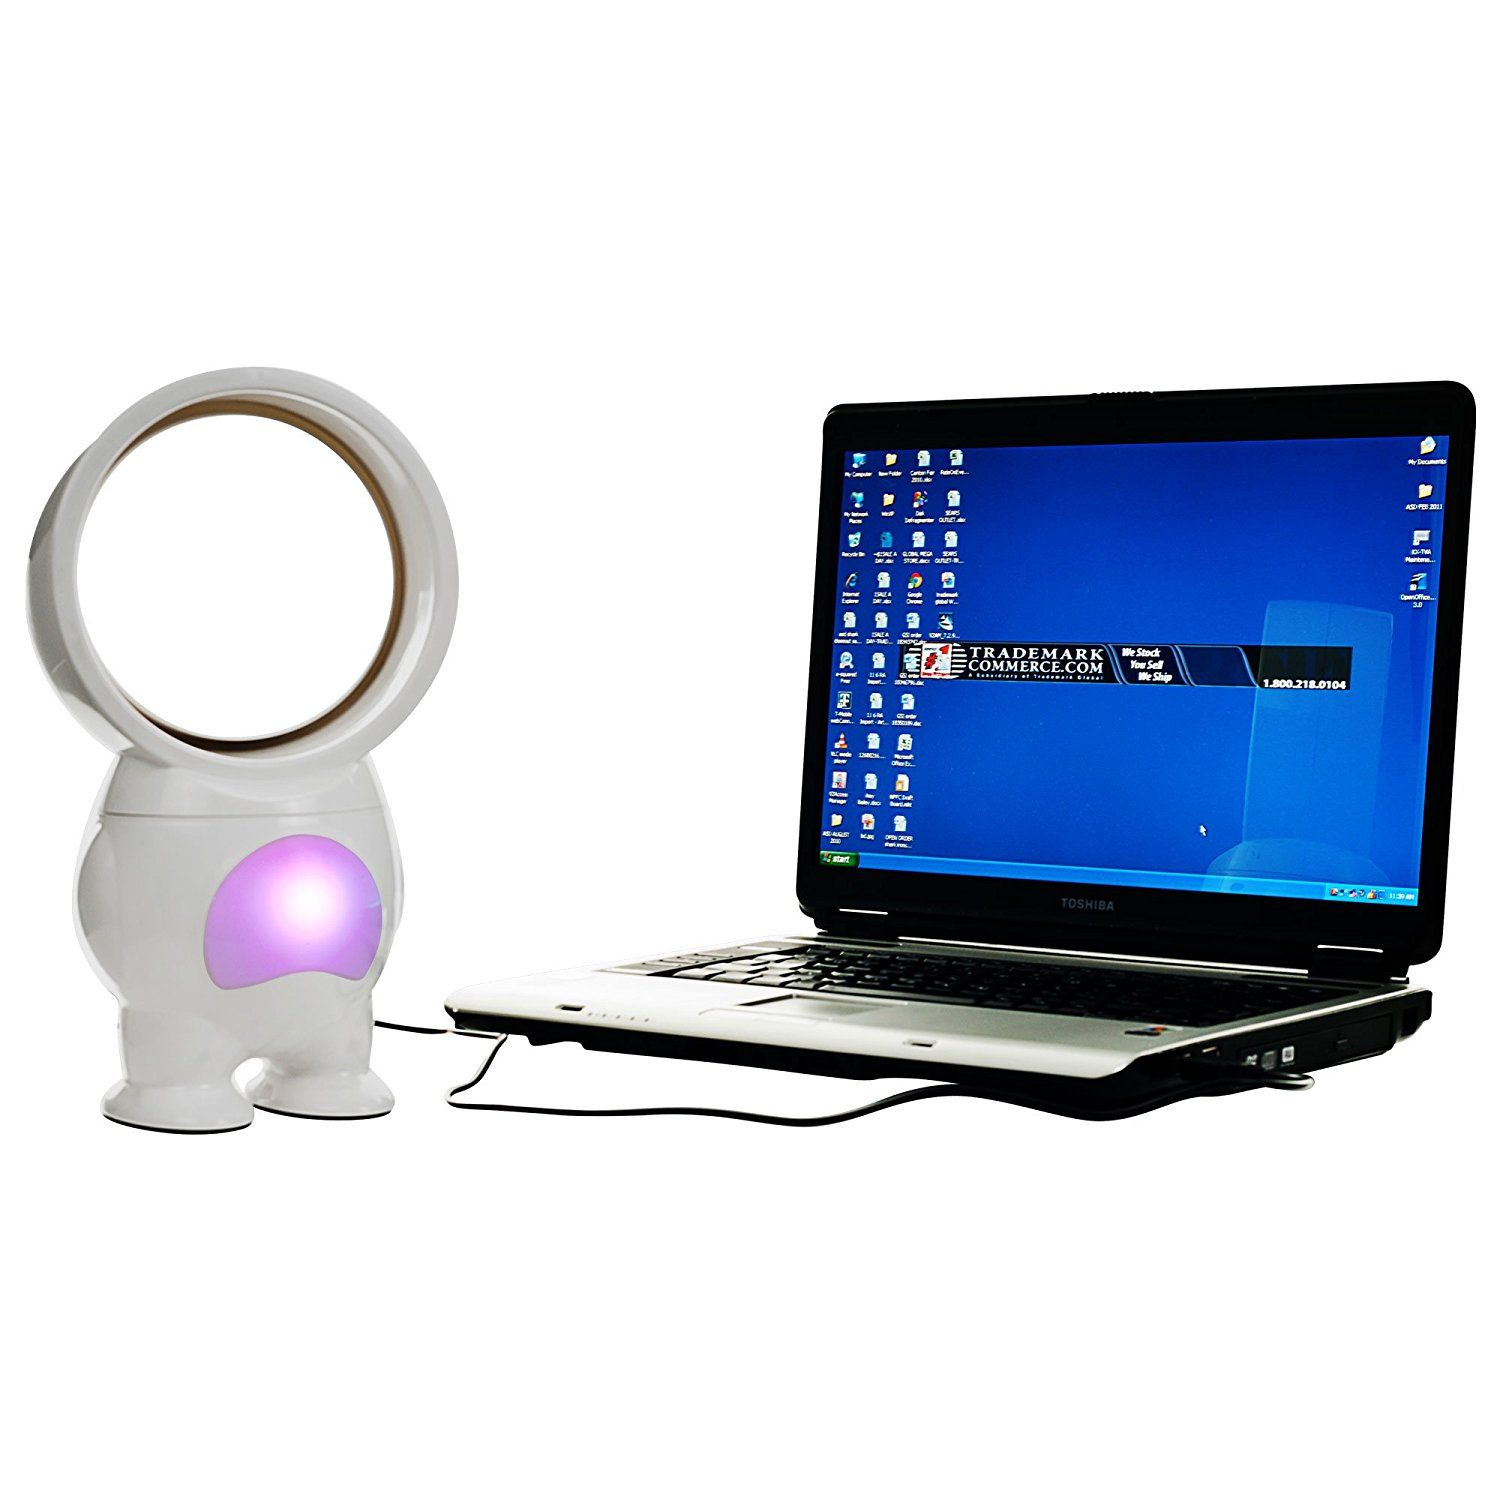 Trademark 72-HE519 TG USB Powered Robo Bladeless Fan - with Light,11-Inch